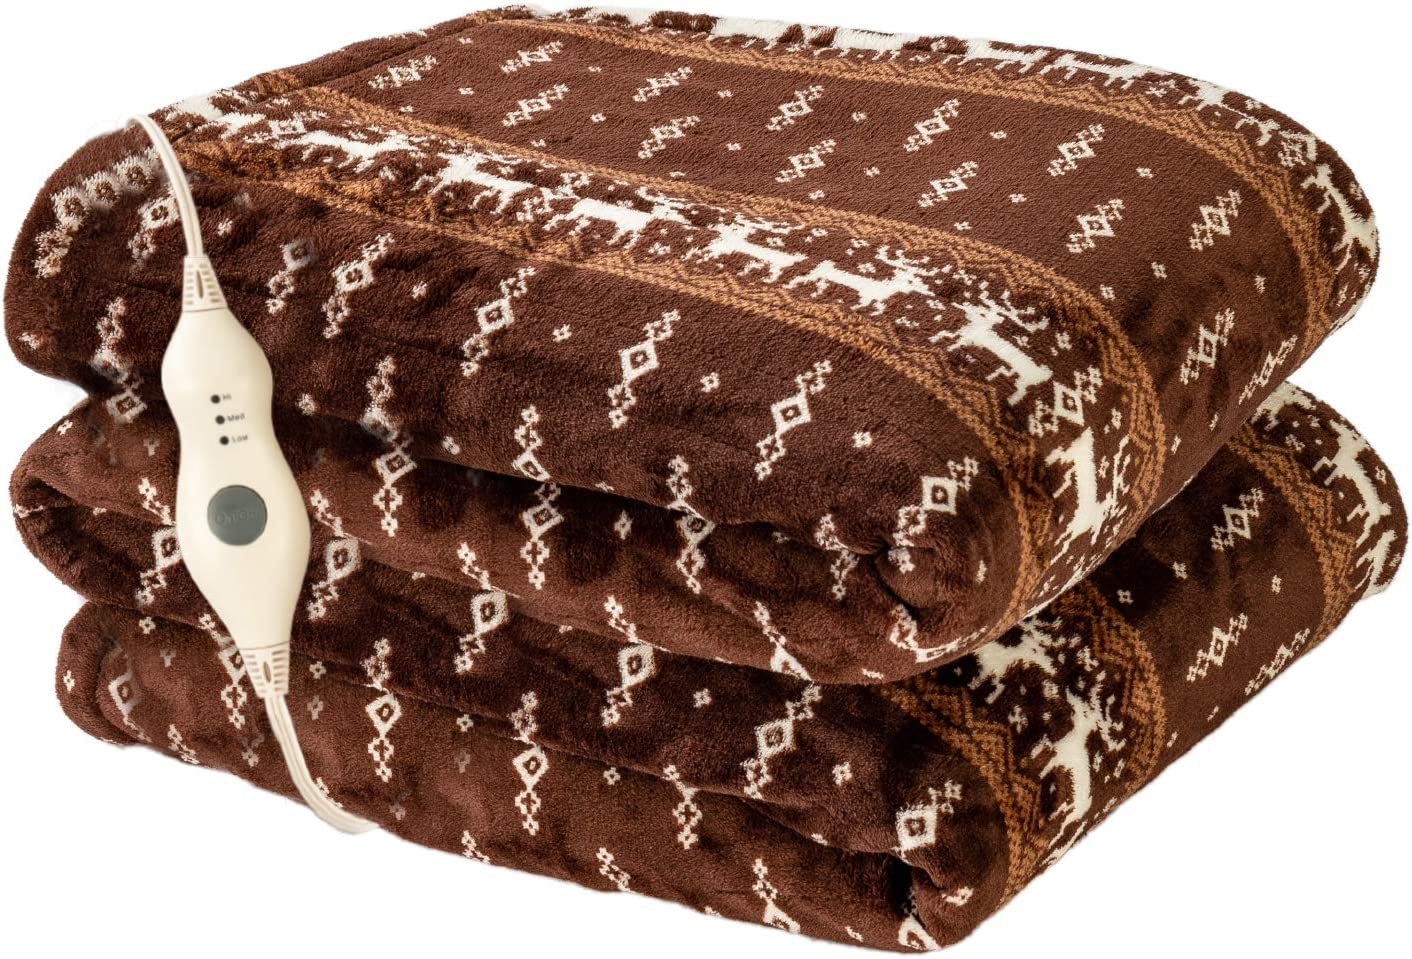 Tampa Mall Electric Heated Blanket Throw with Low price 3 Levels Heating Hours 4 Au